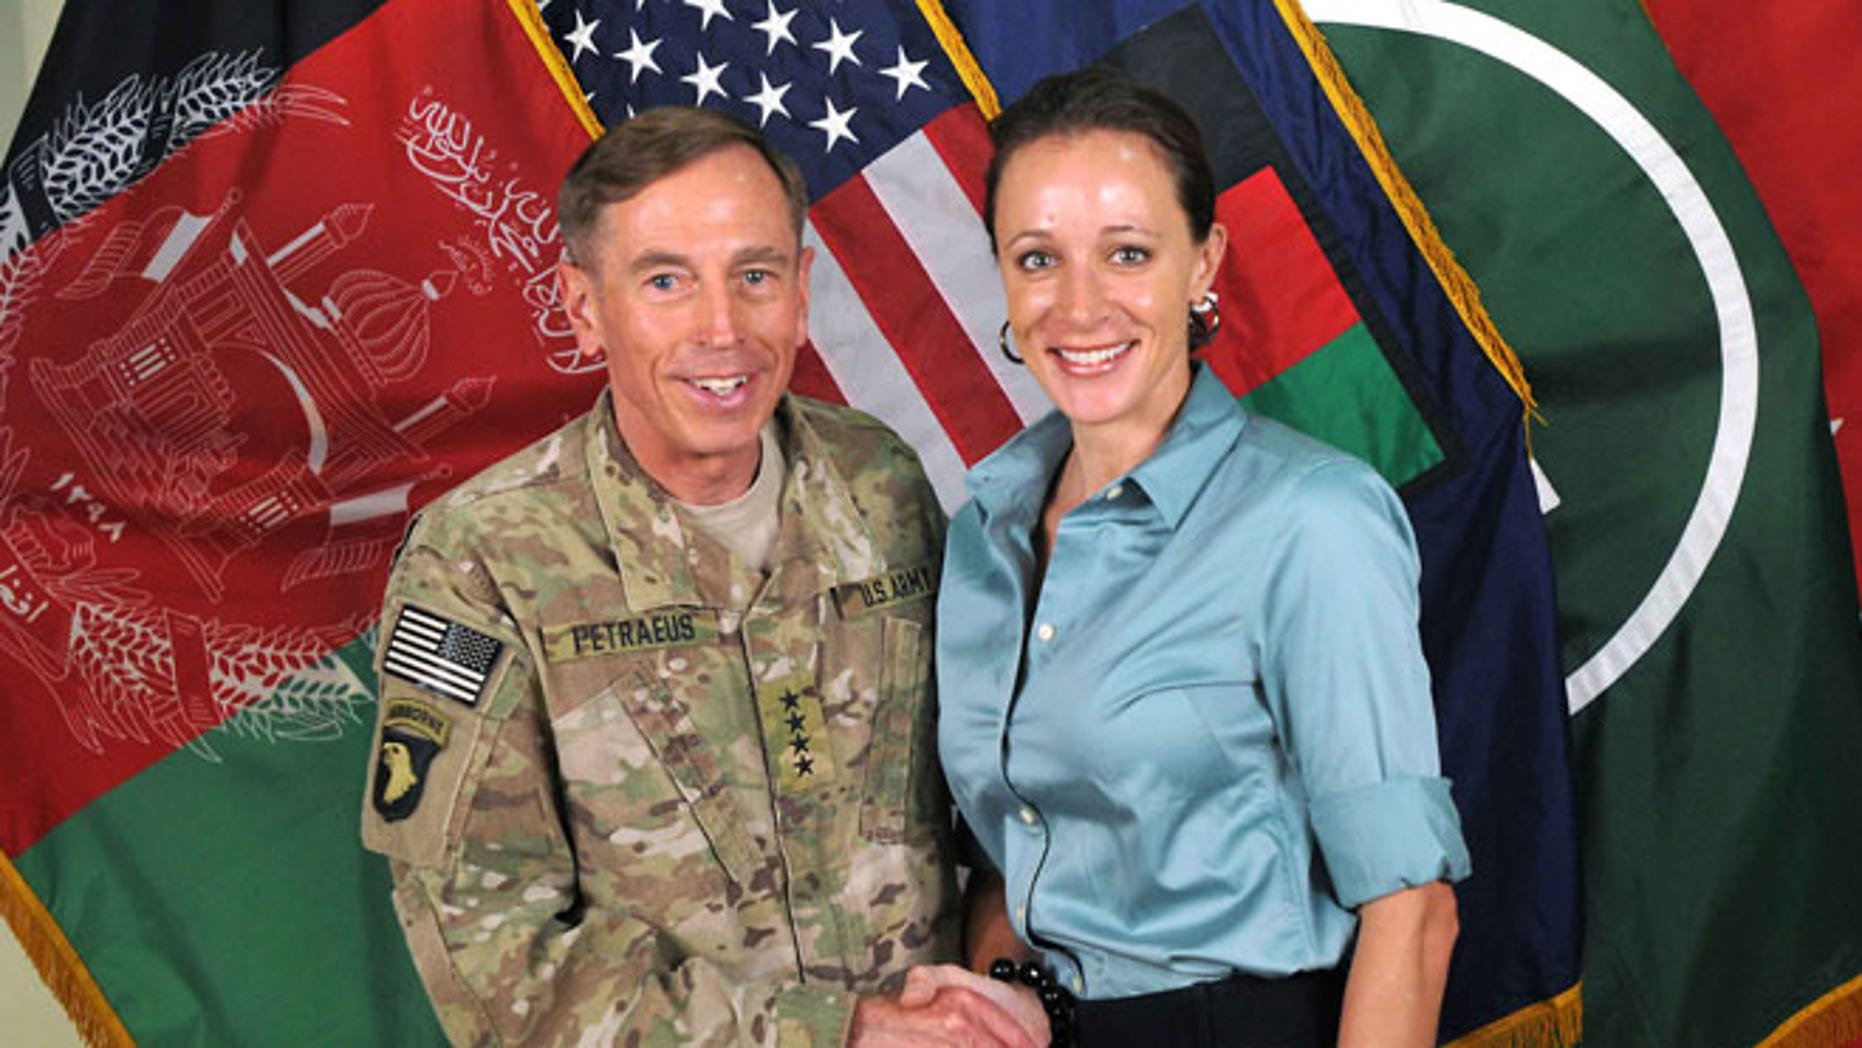 FILE: July 13, 2011: Retired Army Gen. and ex-CIA Director David Petraeus with biographer Paula Broadwell.